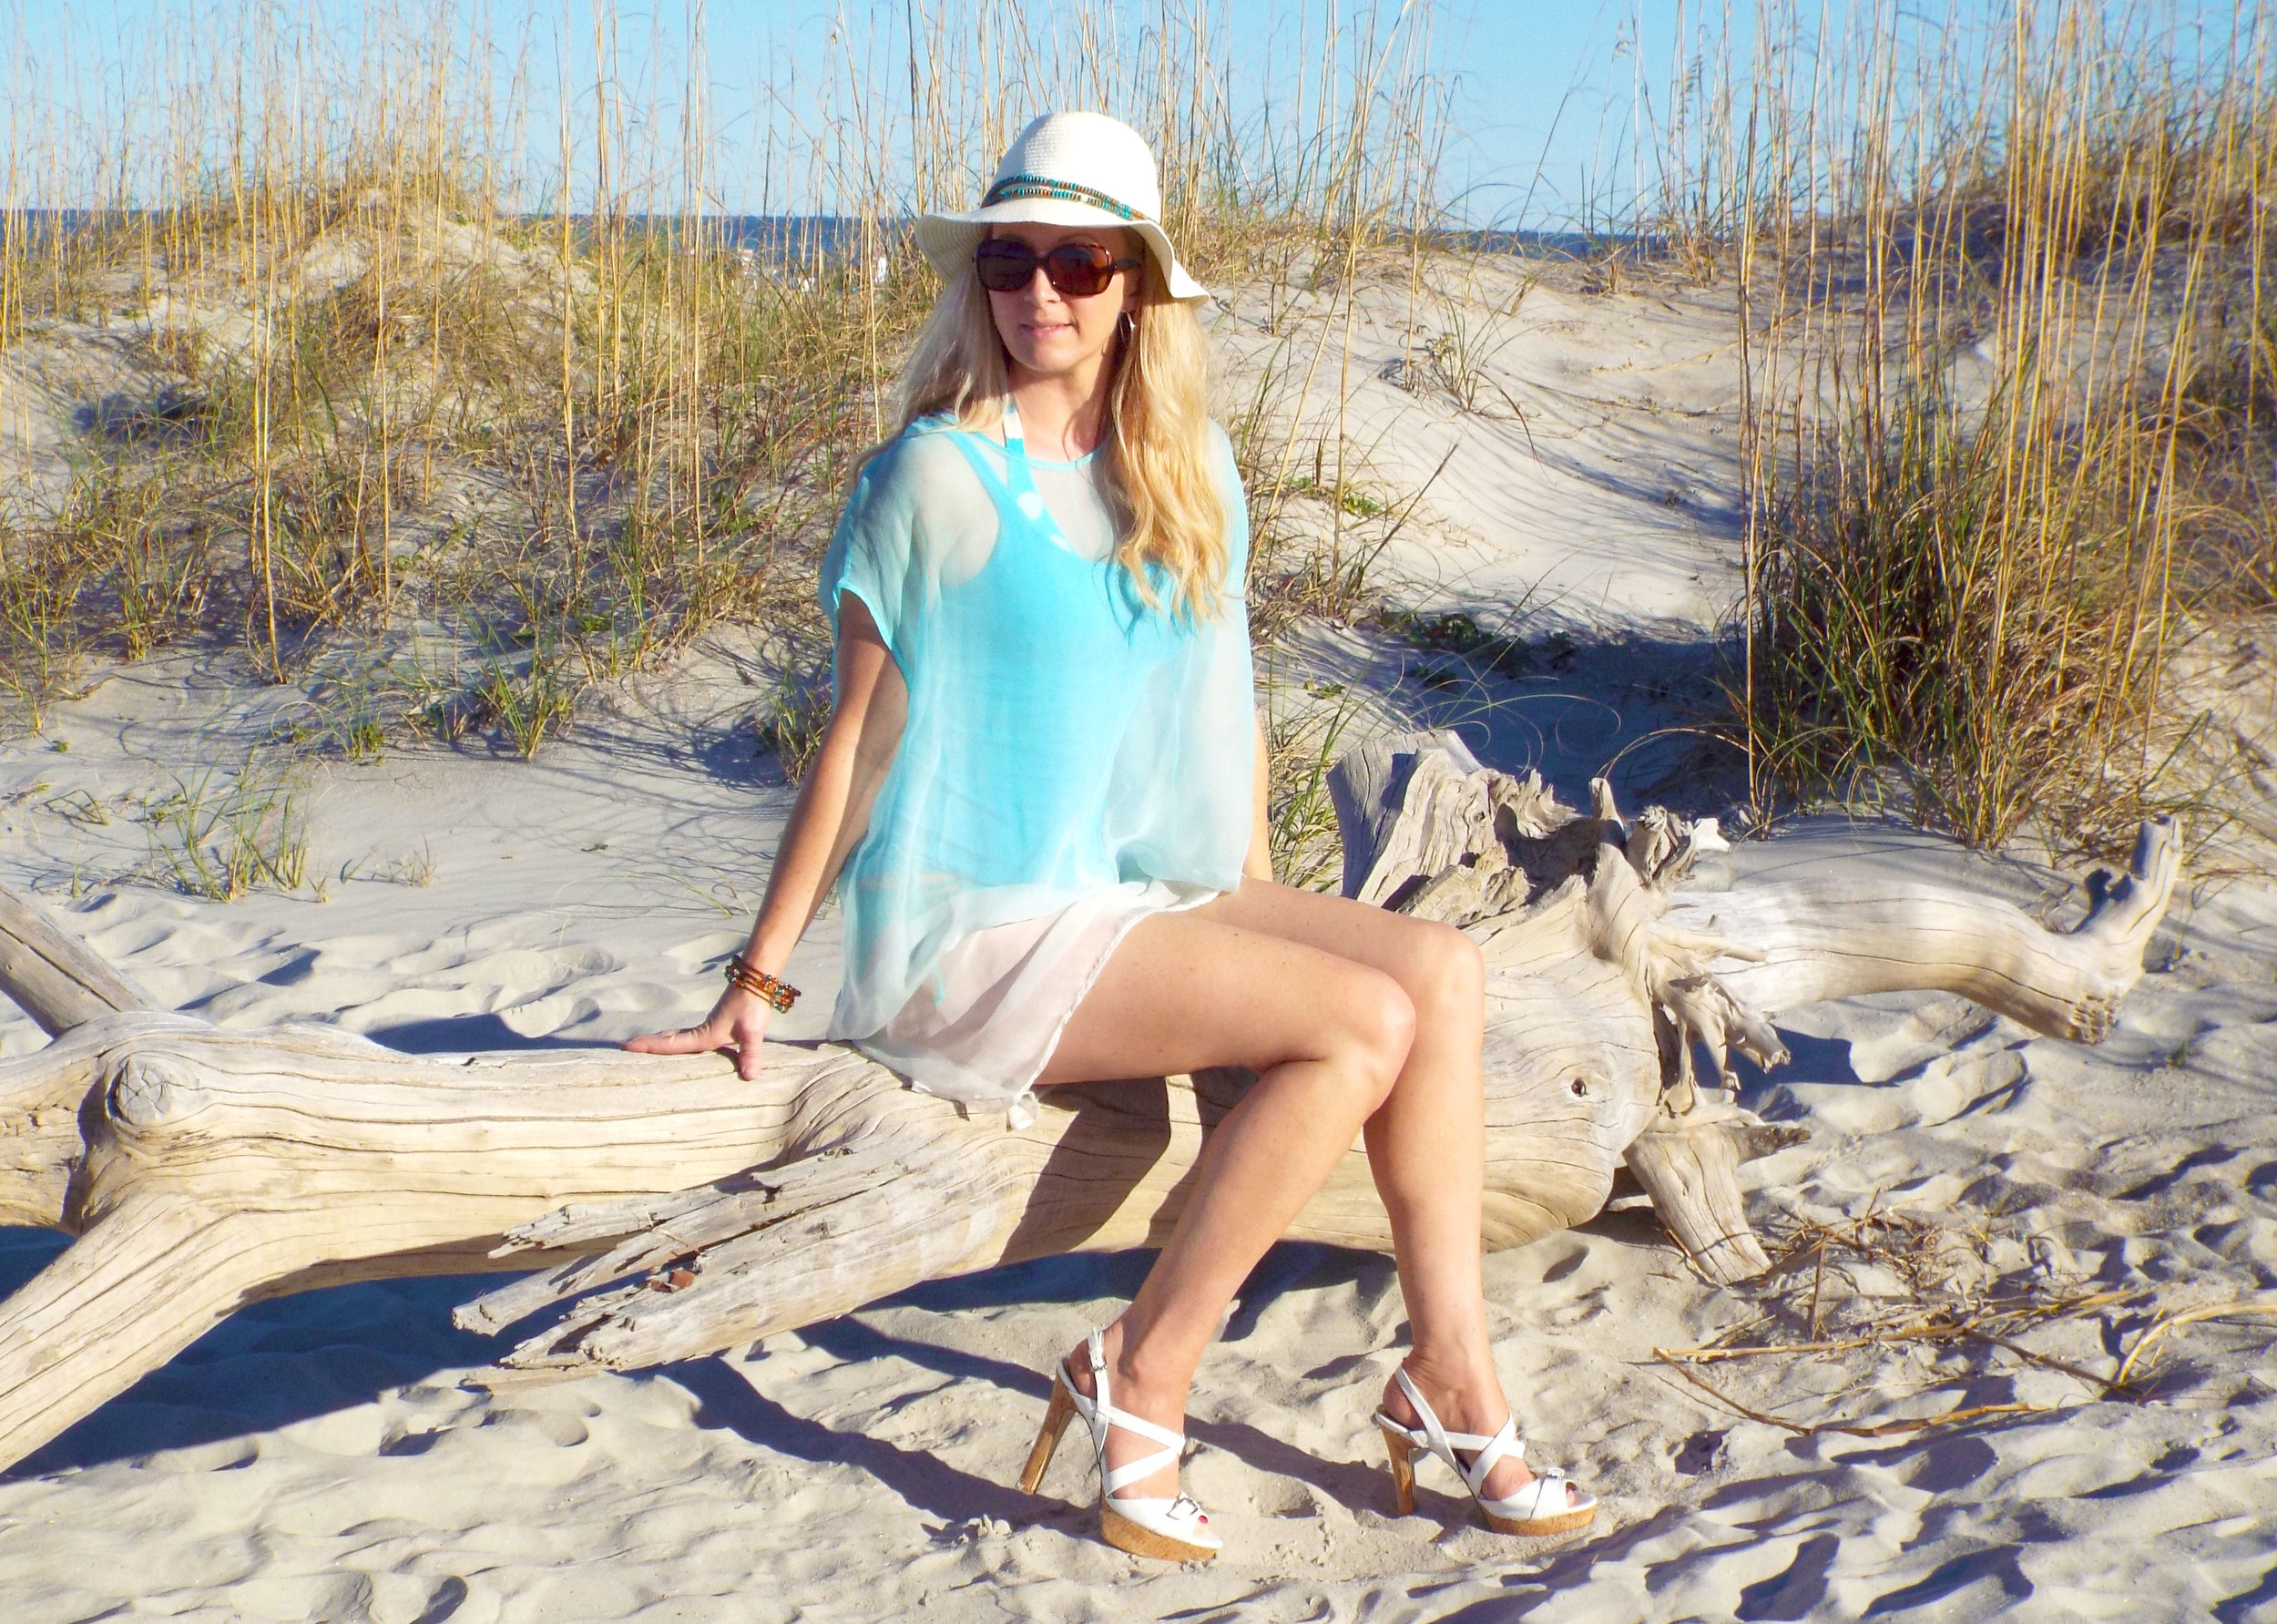 Lisa on the beach in Hilton Head, SC in the one of a kind Lola in Ocean Mist